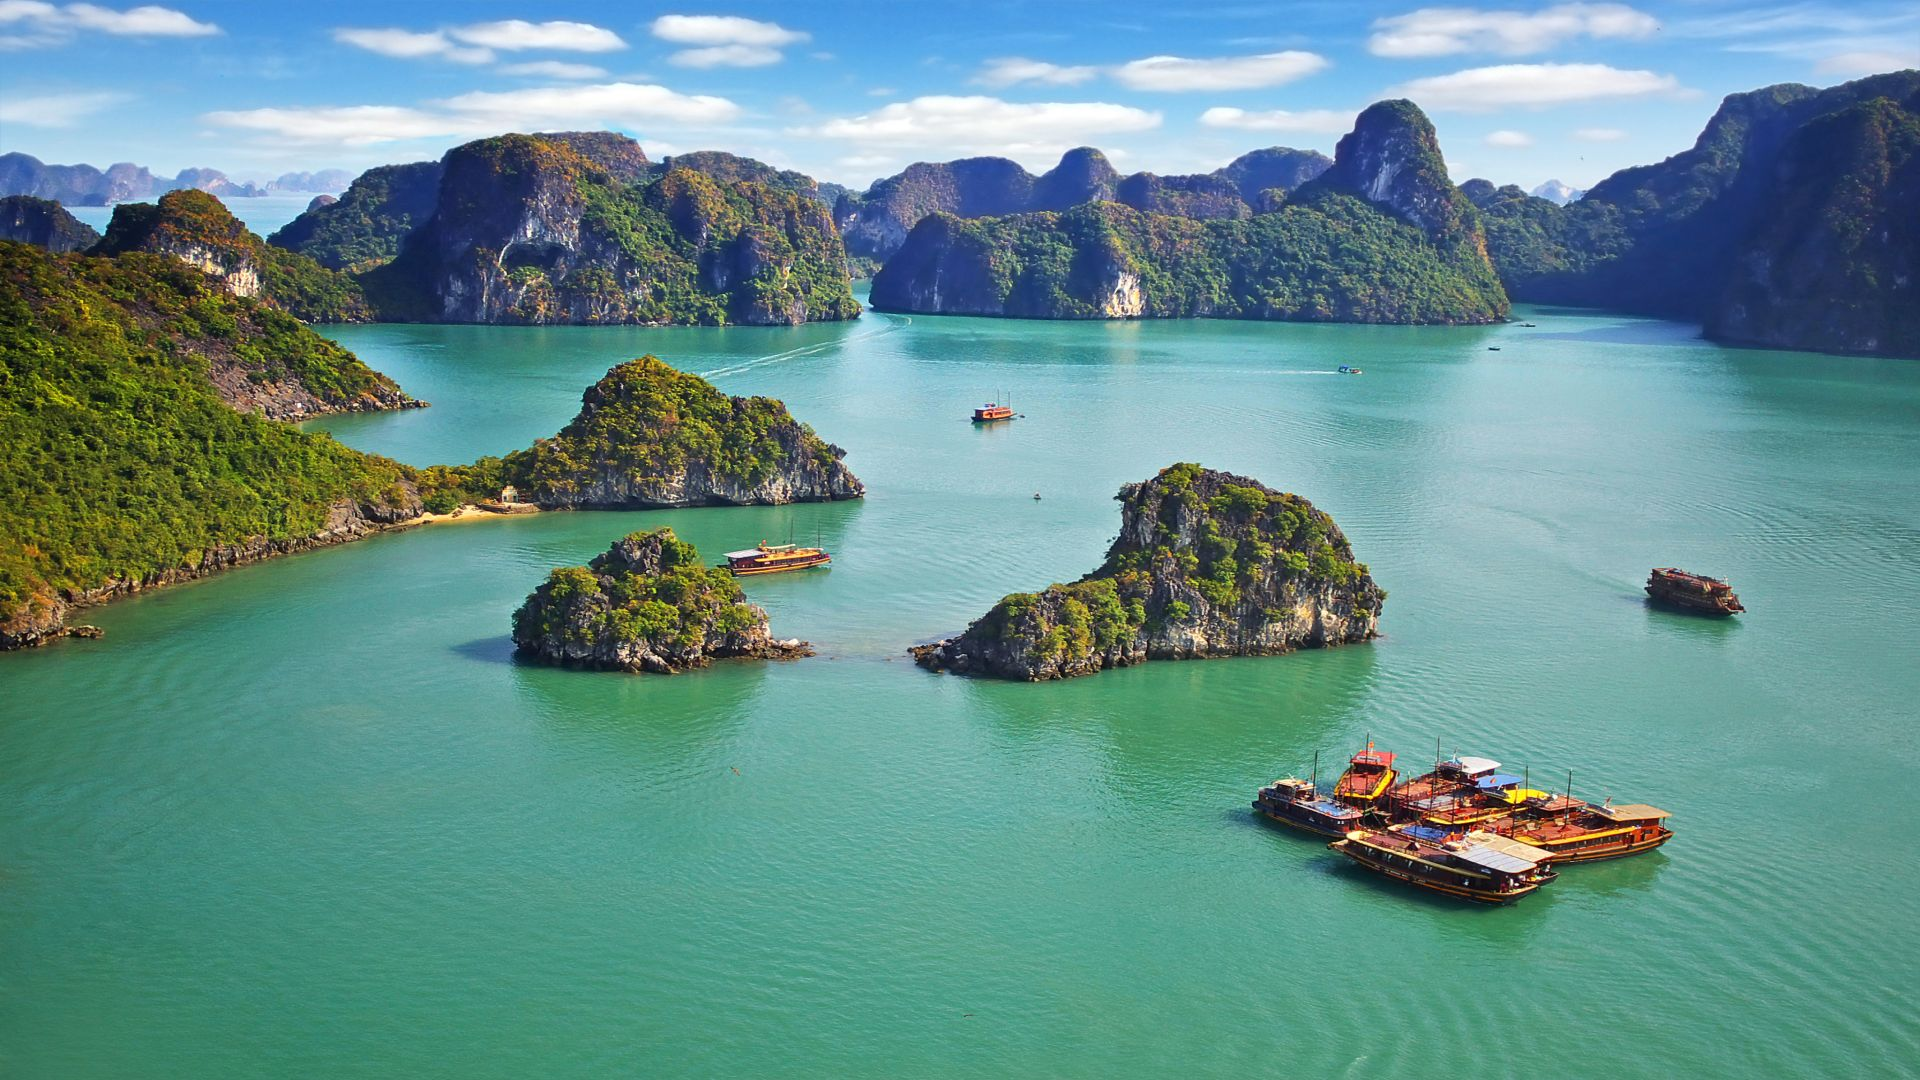 Бухта Халонг, горы, море, Ha Long Bay, Vietnam, mountains, sea, 8k (horizontal)